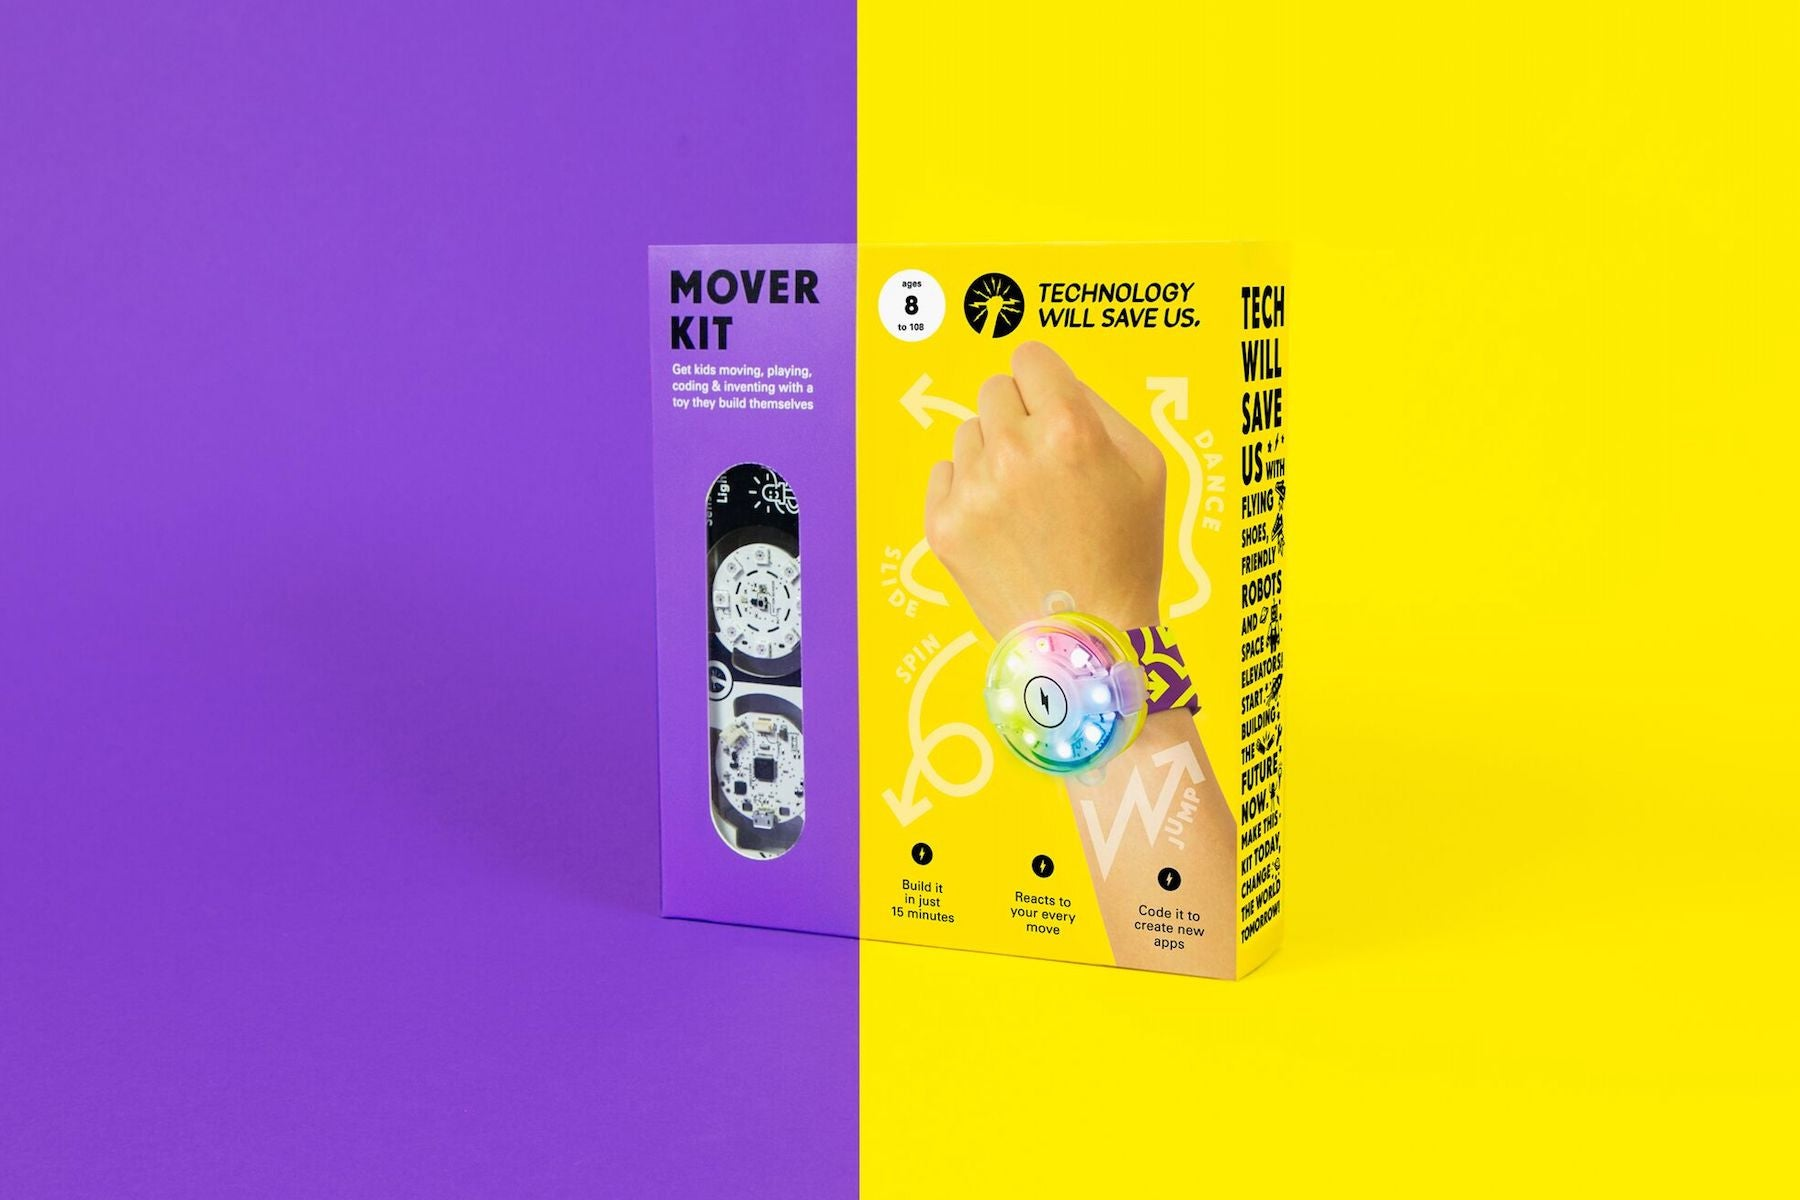 Mover Kit - Akin Tech